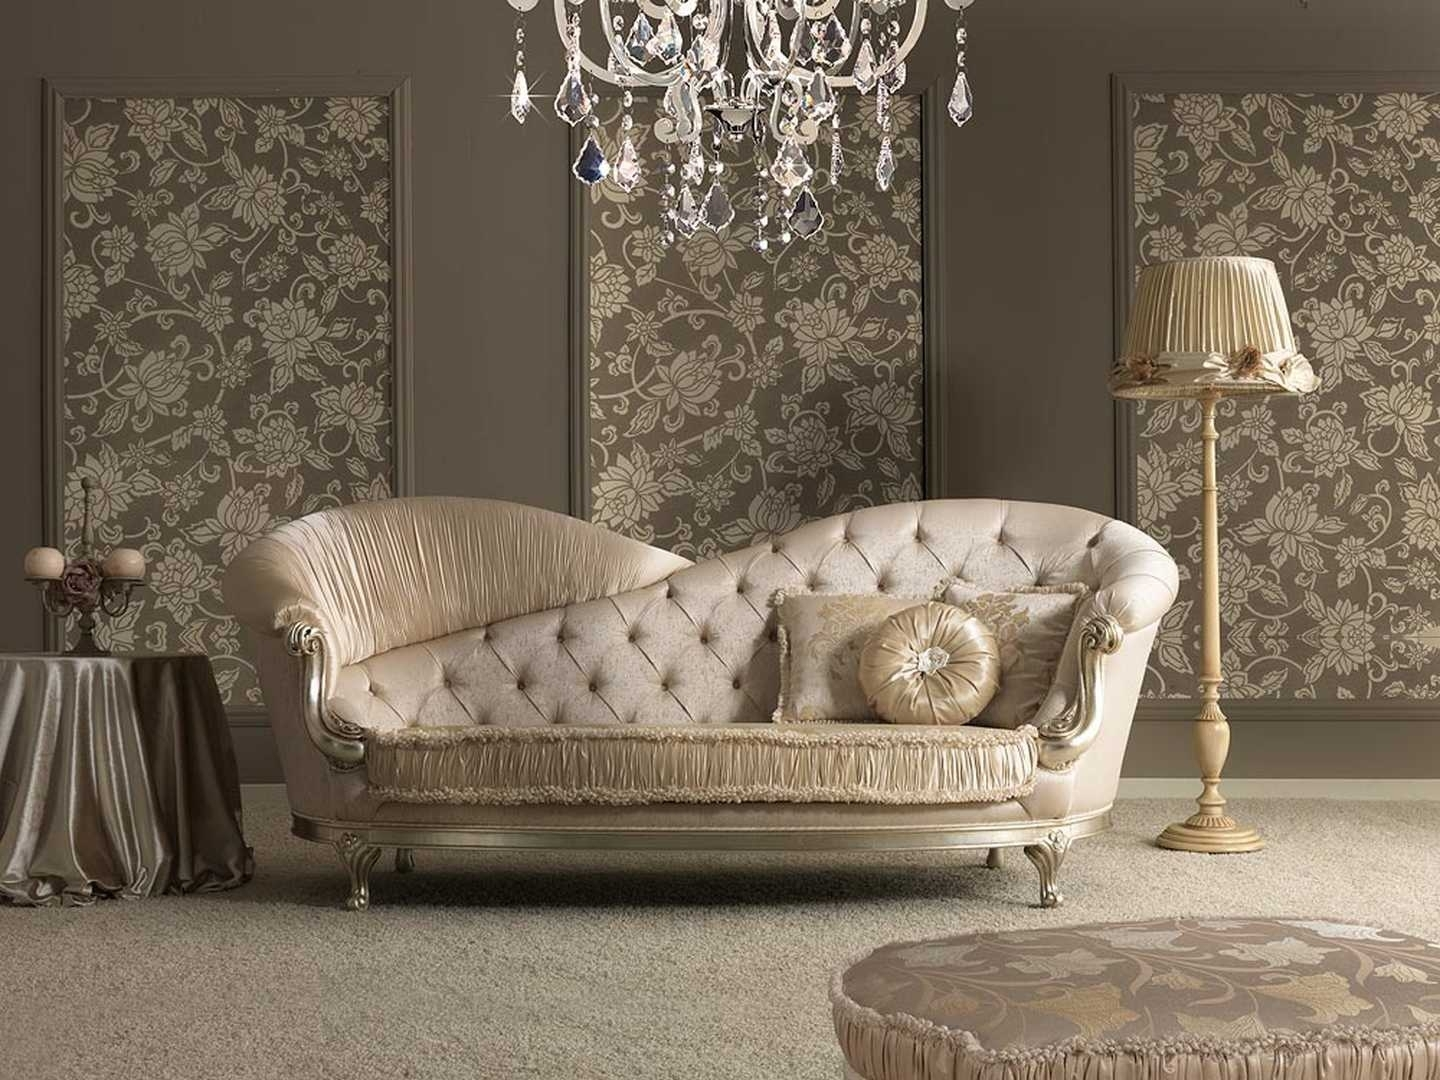 Luxury Italian Sofas, Armchairs & Chaises, Exclusive To Mondital Throughout Luxury Sofas (Image 4 of 10)